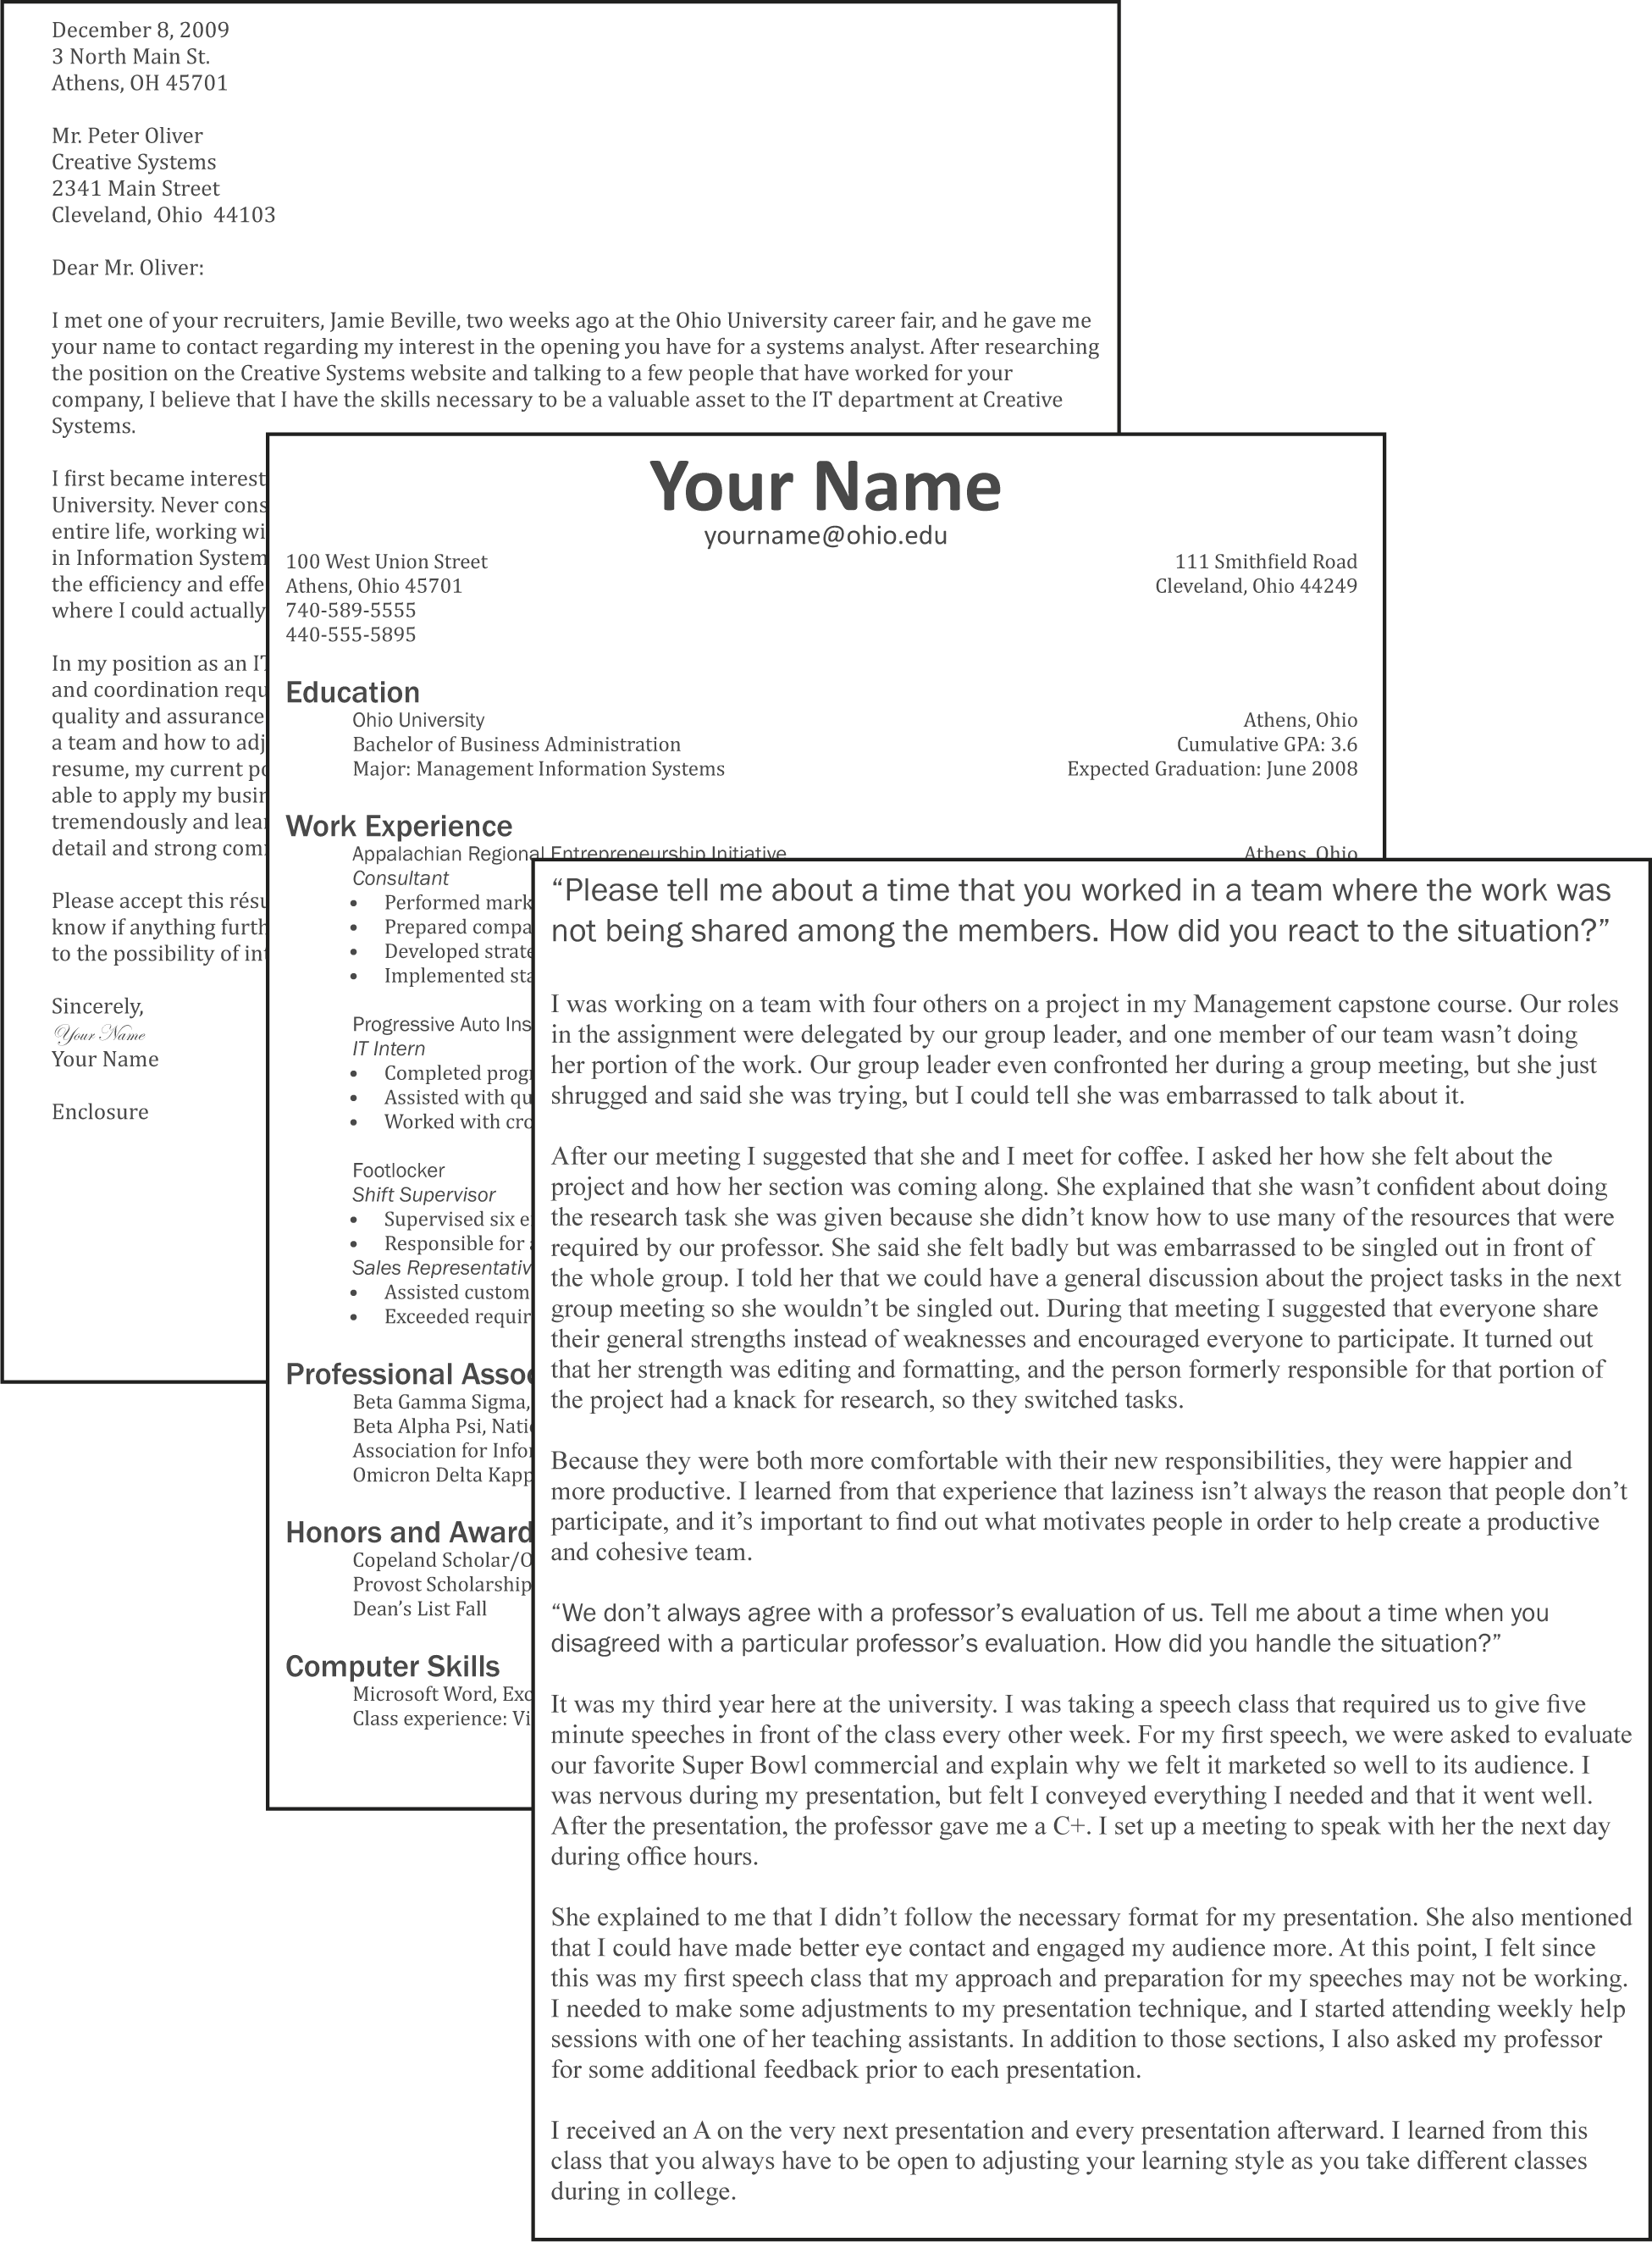 l3 assignment resume cover letter and interview - How To Prepare A Resume Cover Letter